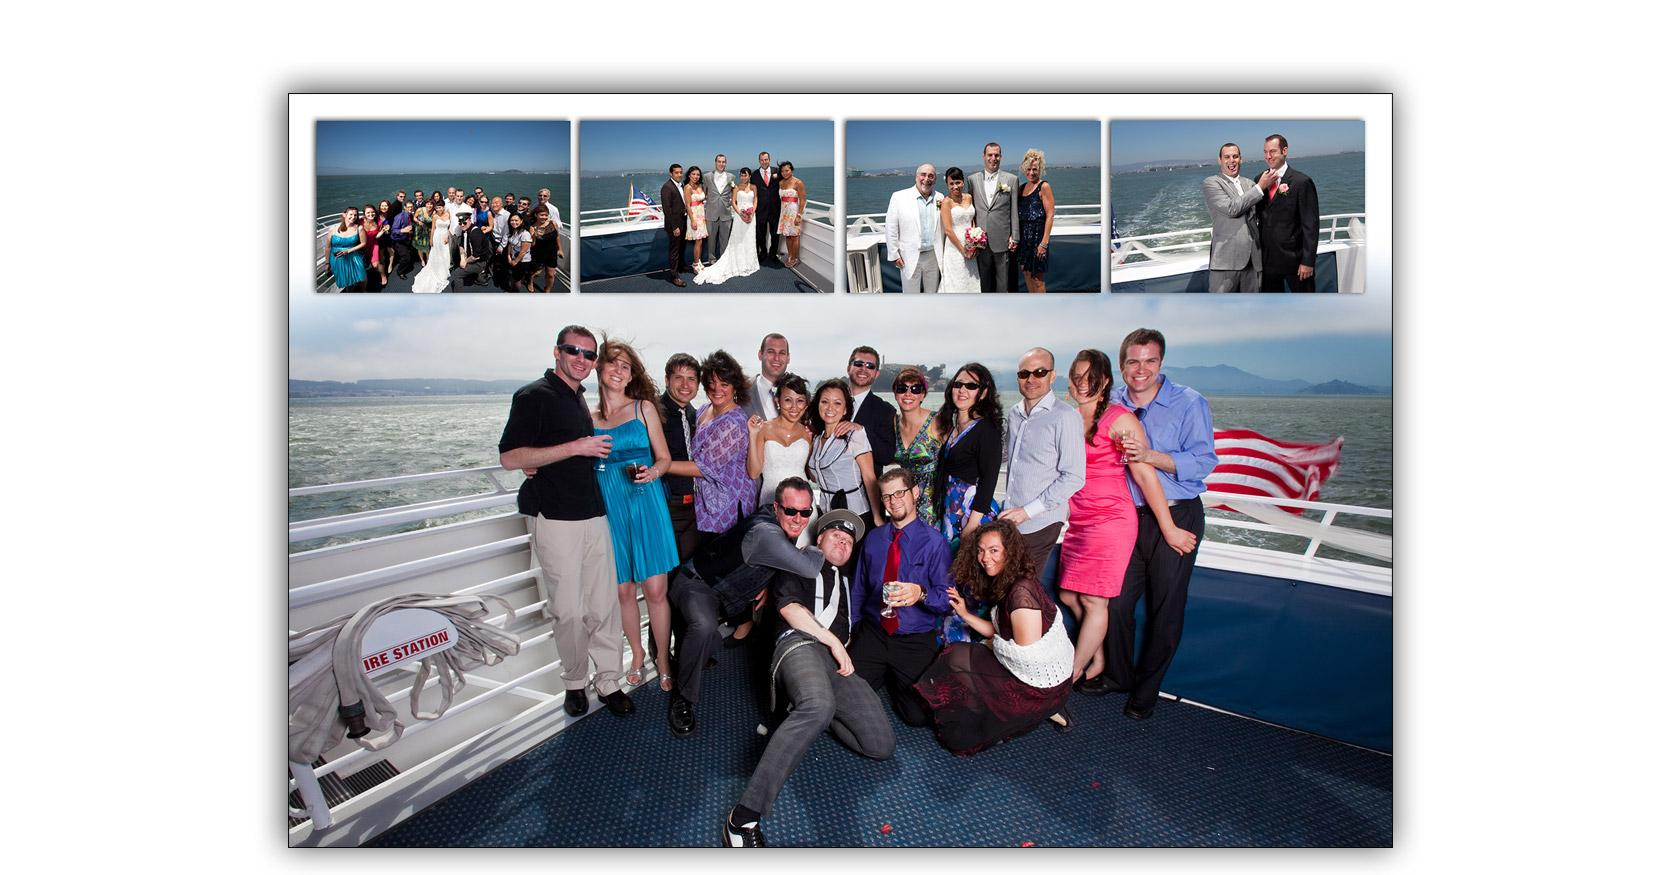 San Francisco Bay yacht boat wedding cruise Commodore Events Merlot photography album 08